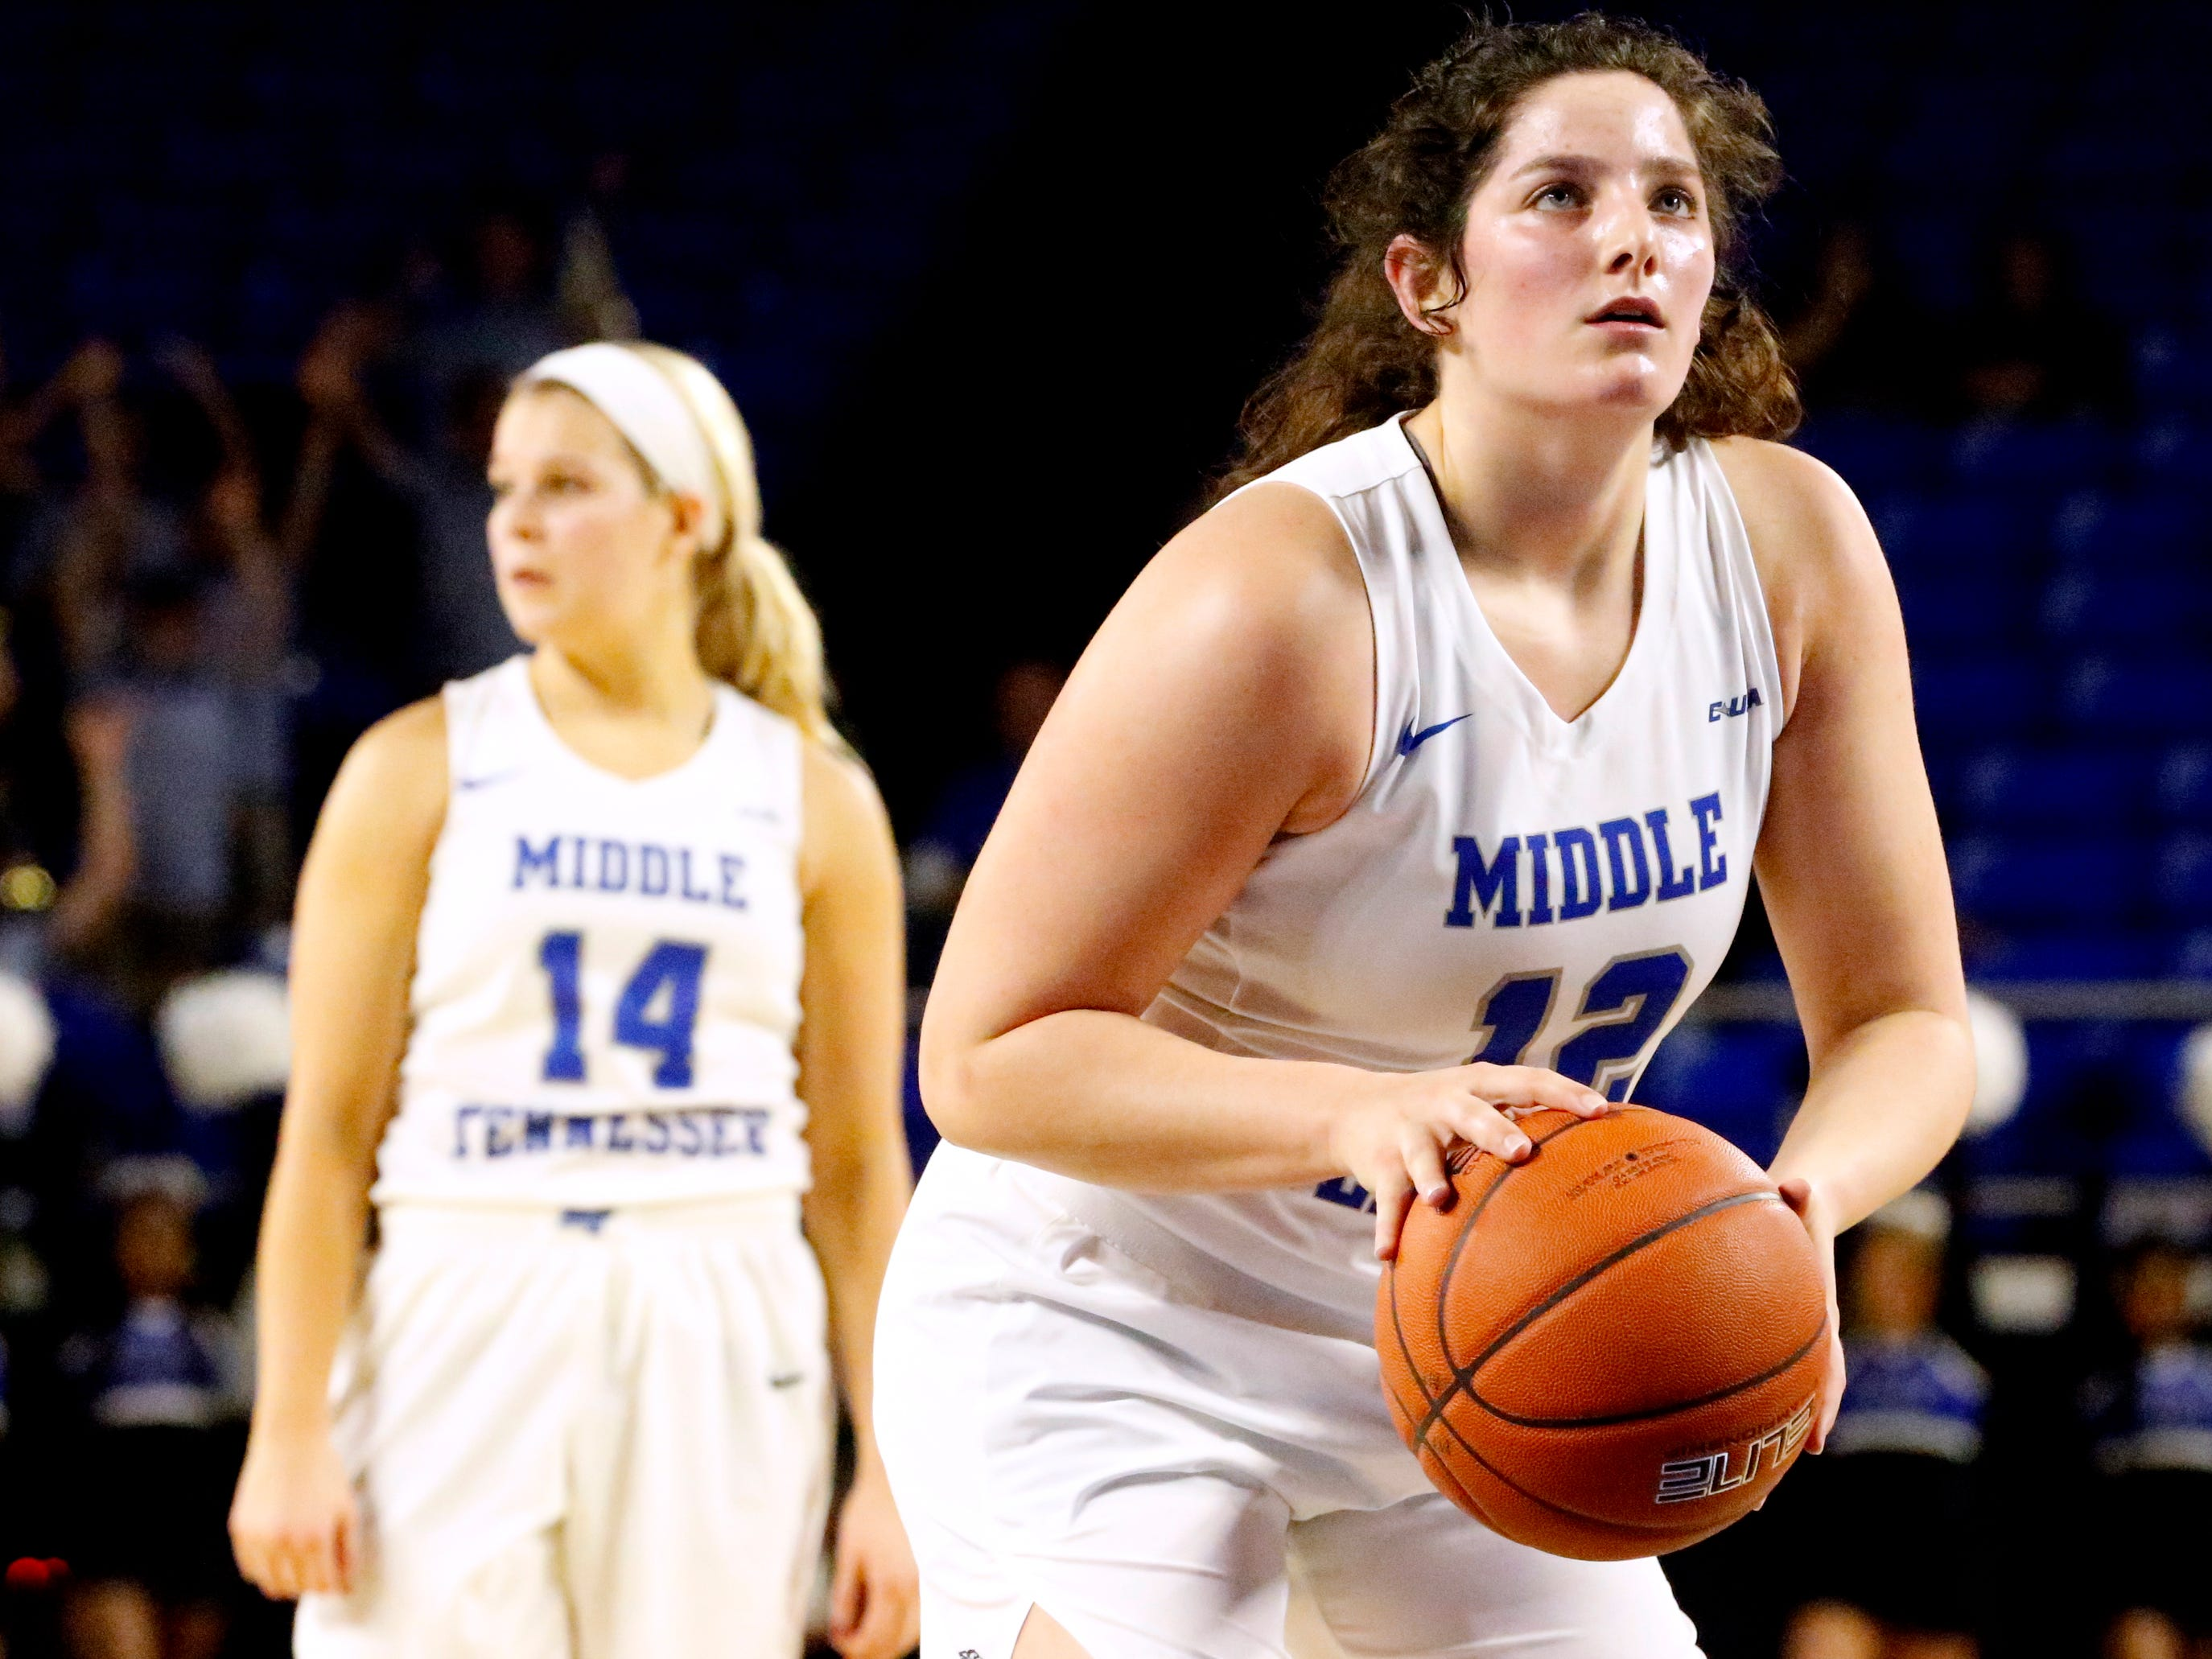 MTSU's guard Jess Louro (12) shoots a free throw as MTSU's guard Katie Collier (14) stands behind her during the game against Southern Miss on Thursday Jan. 10, 2019.